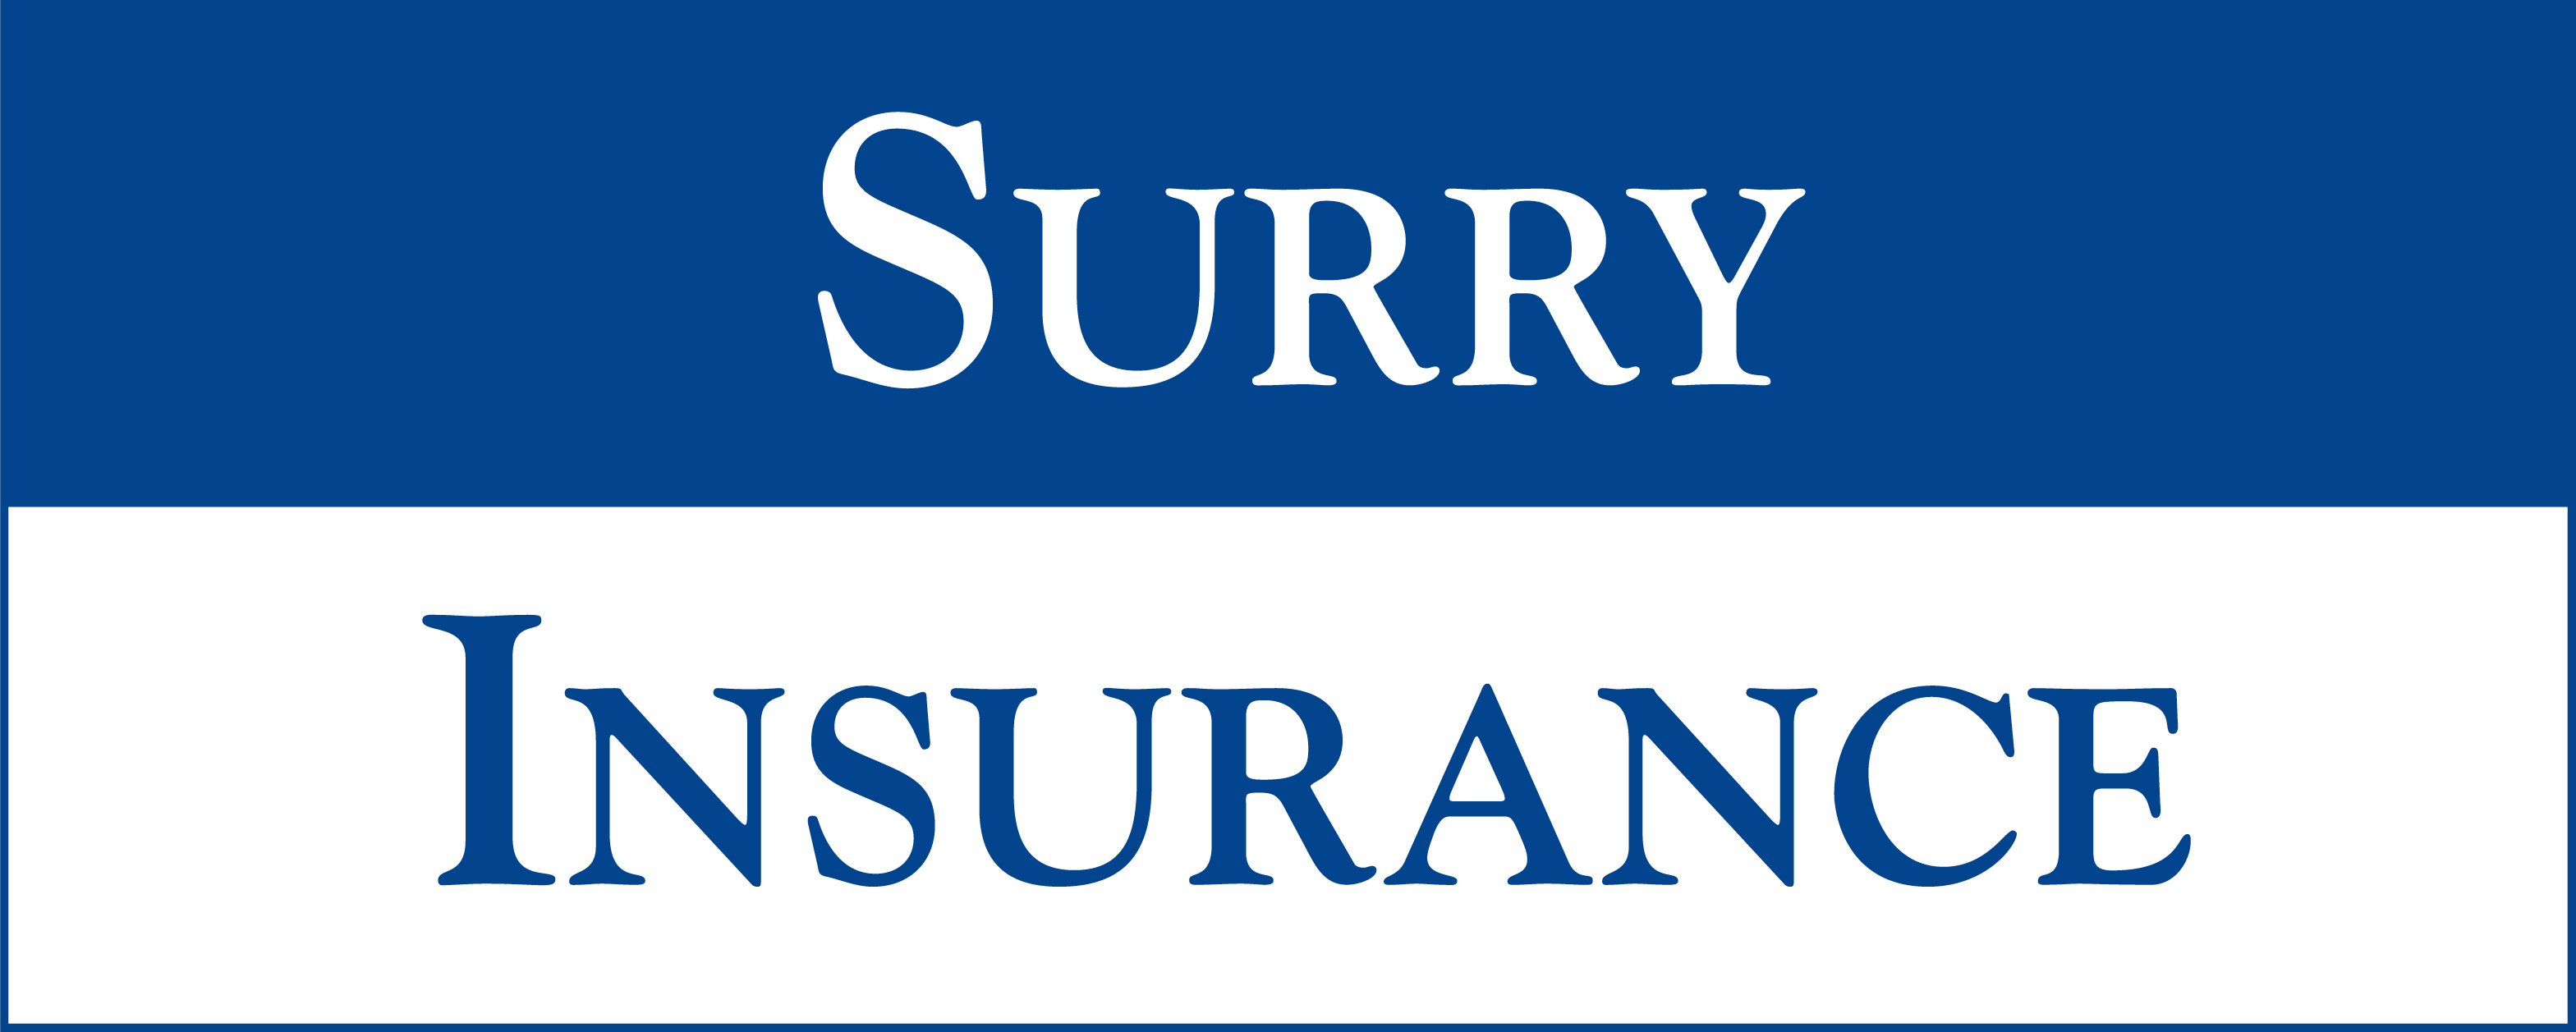 Surry Insurance